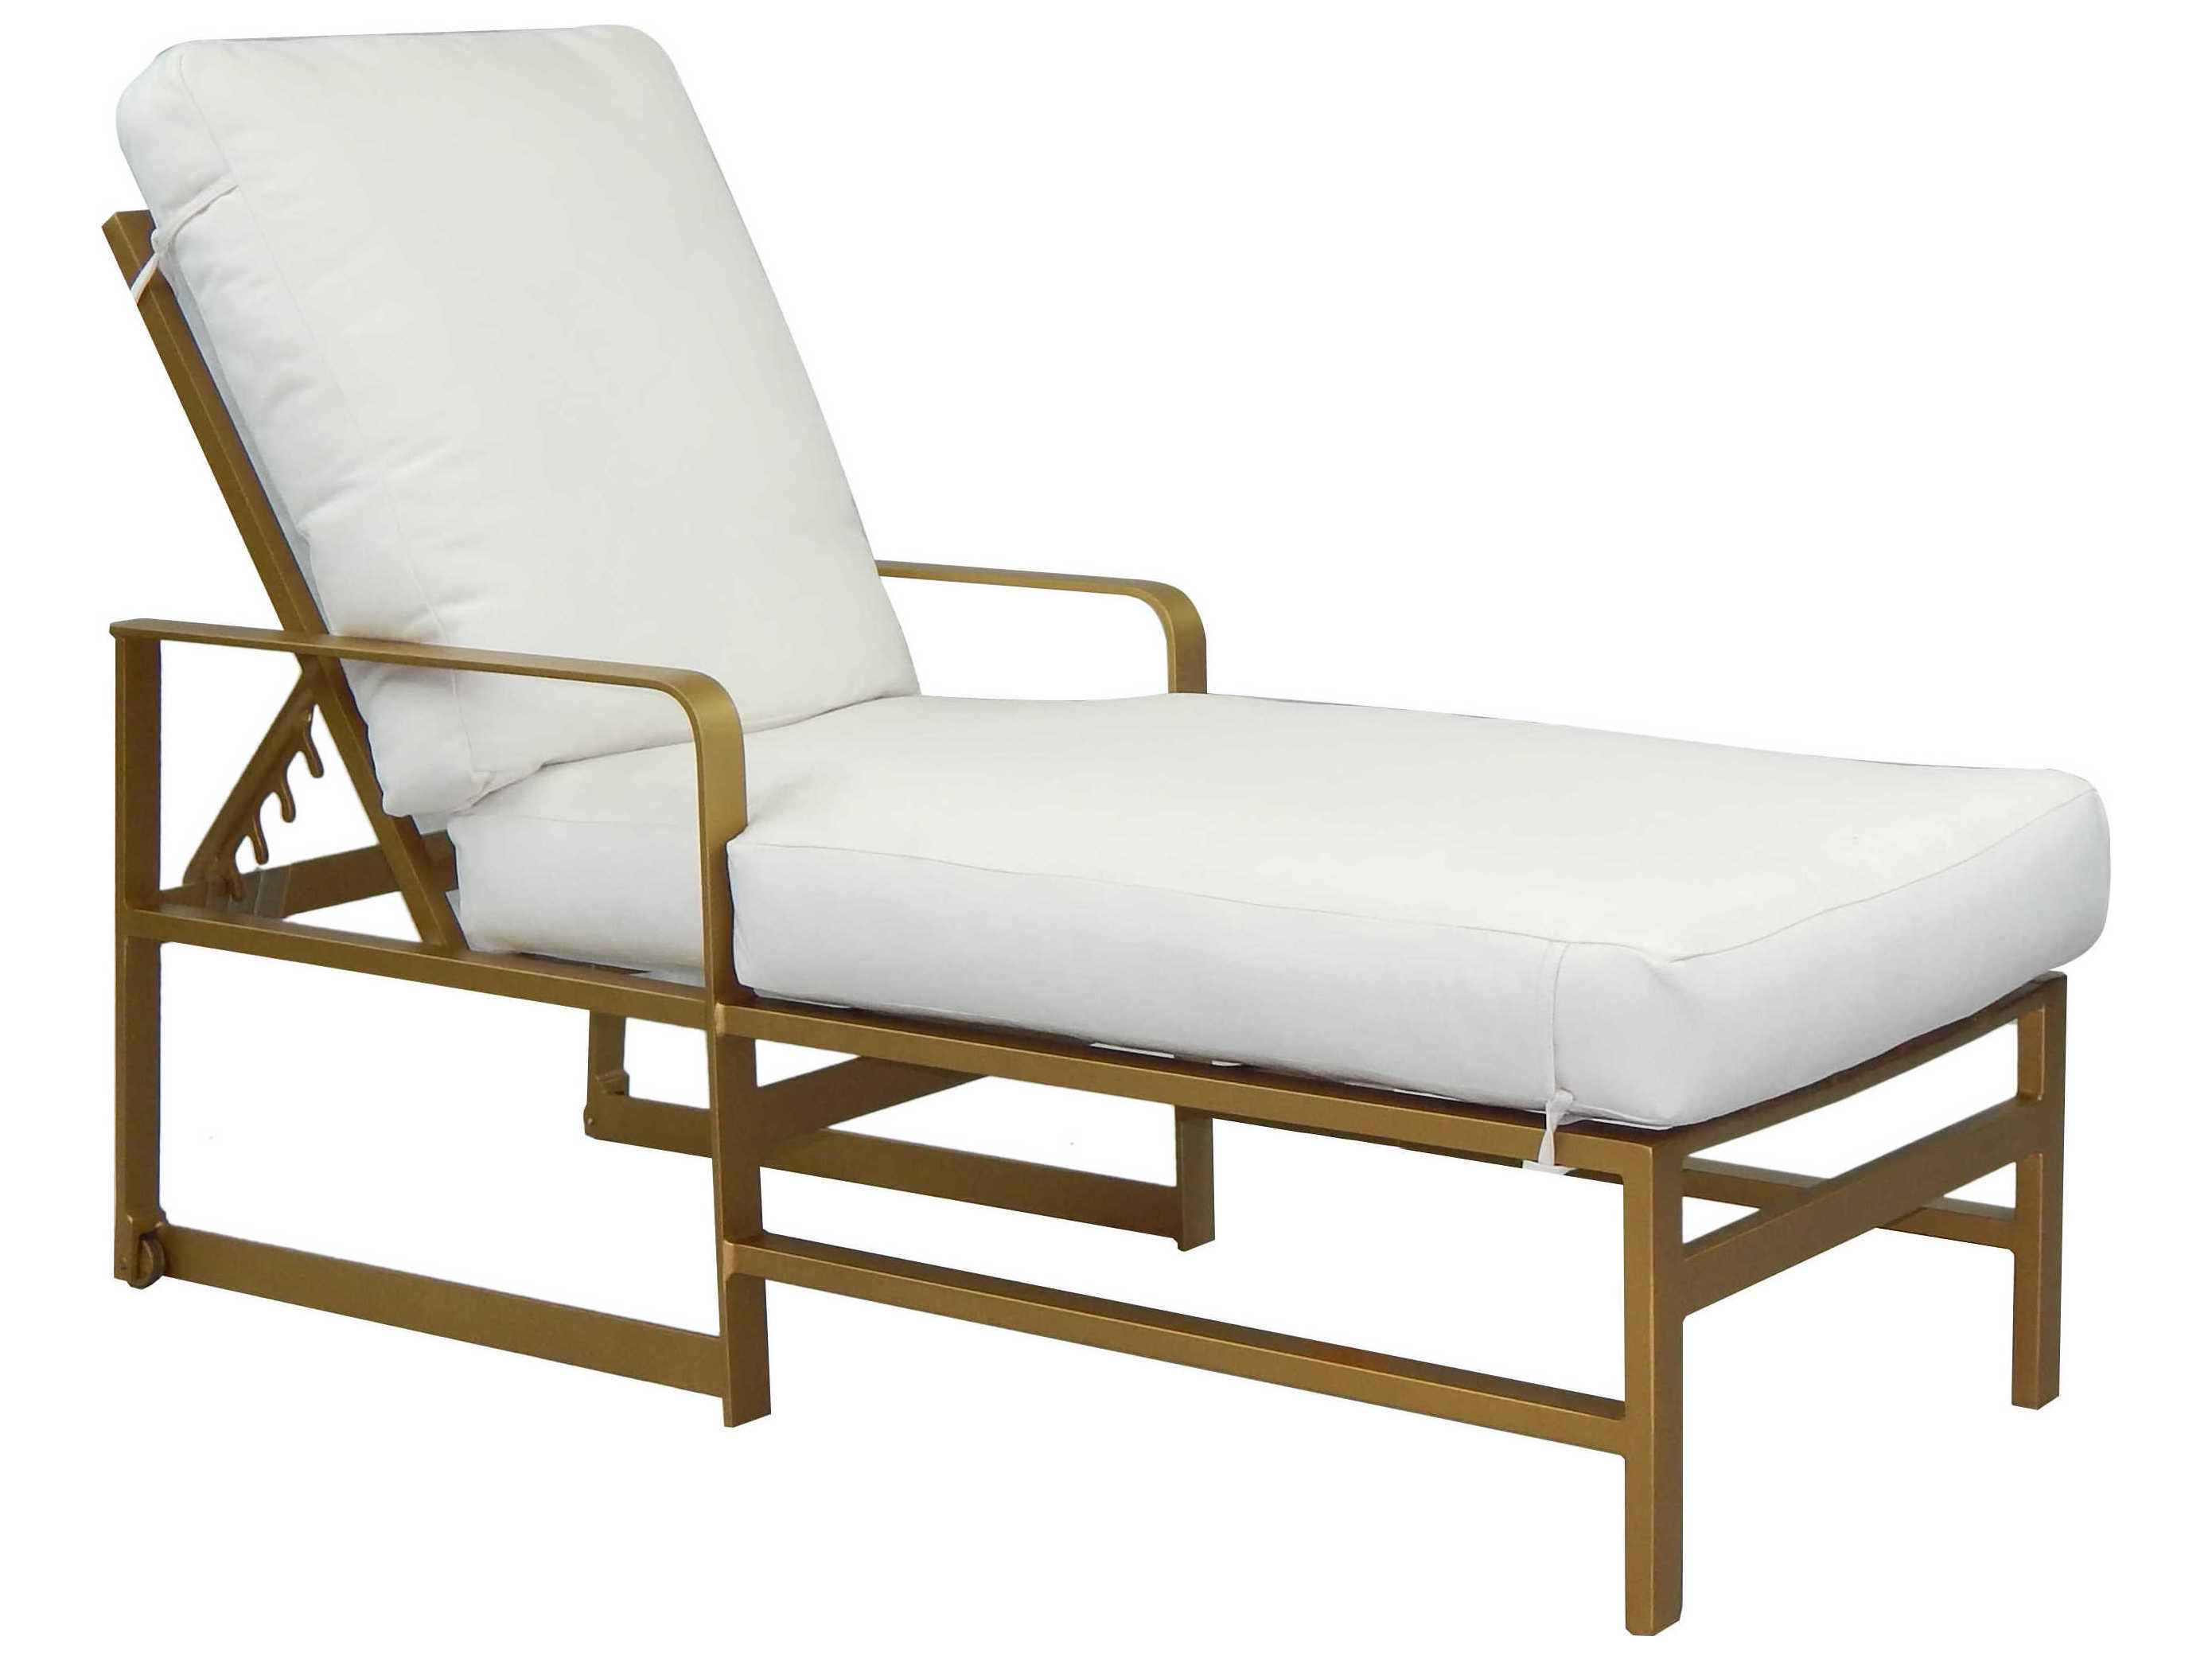 Castelle solstice cushion aluminum chaise lounge with for Aluminum chaise lounge with wheels